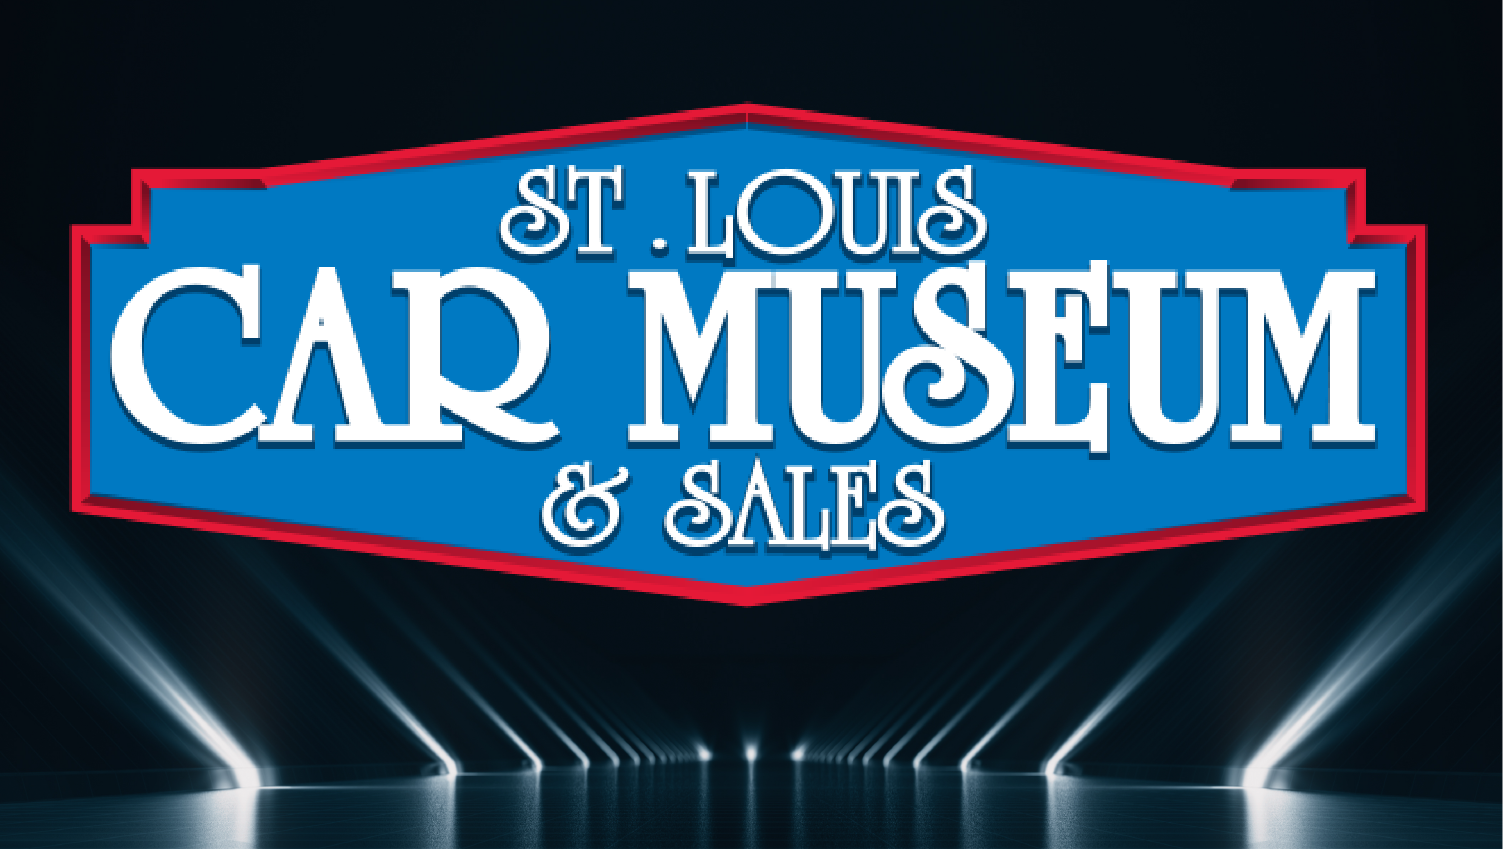 St. Louis Car Museum & Sales